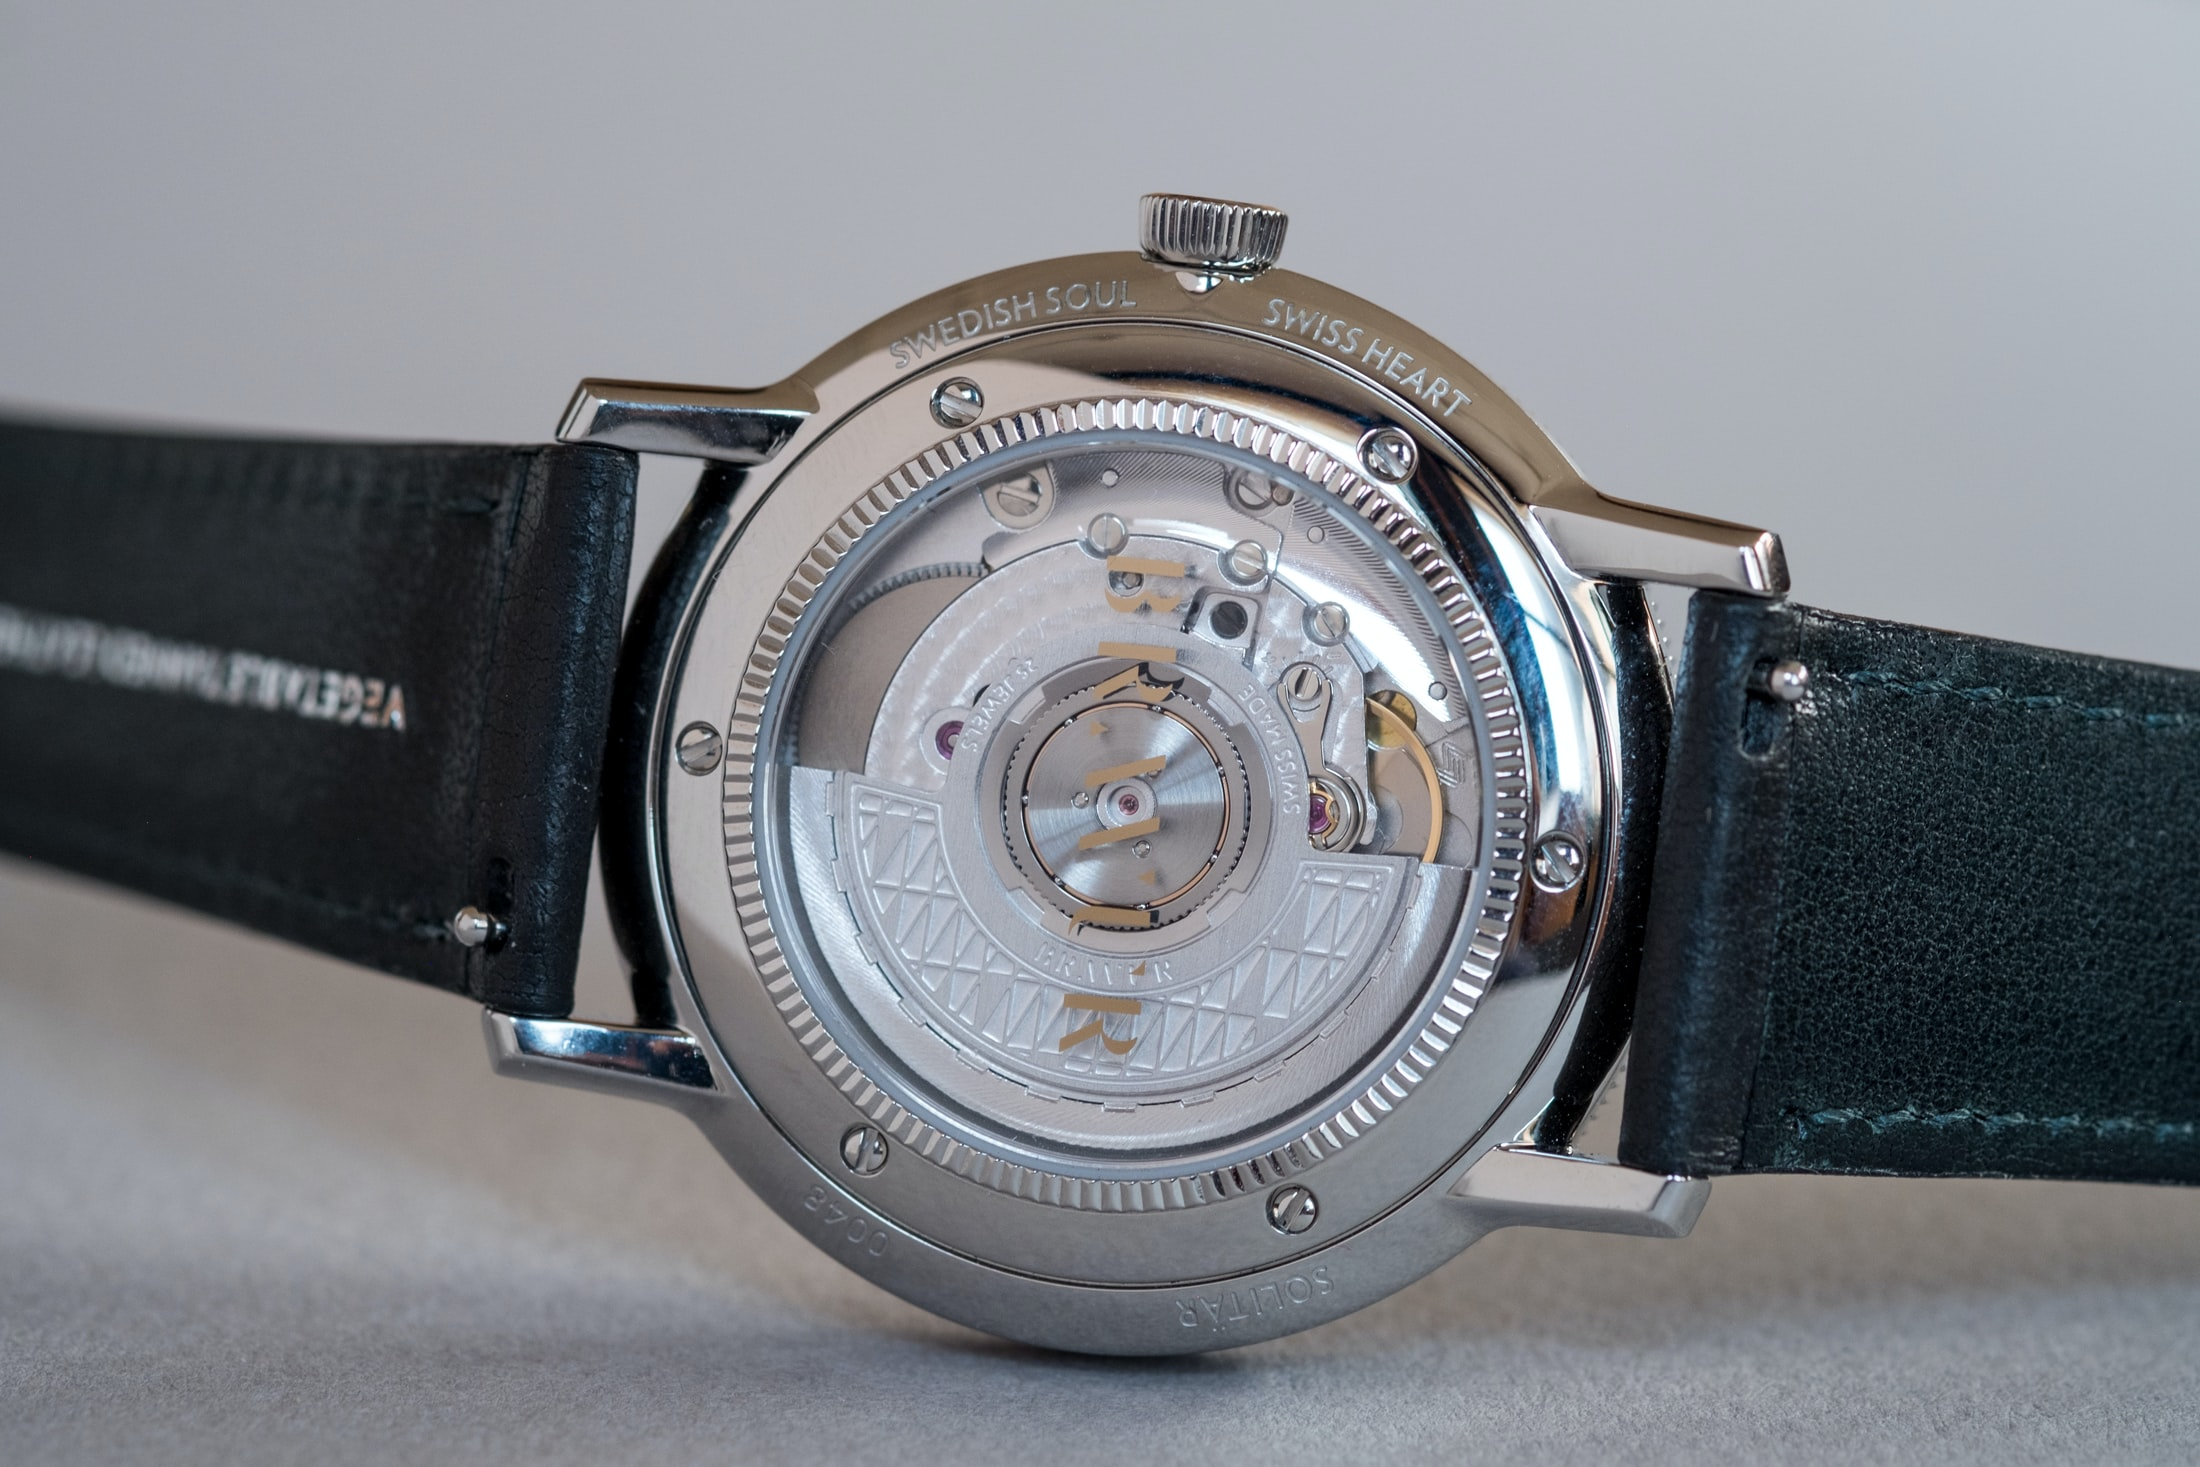 bravur watches bw003 movement Hands-On: The Bravur BW003 Automatic Hands-On: The Bravur BW003 Automatic bravur 11